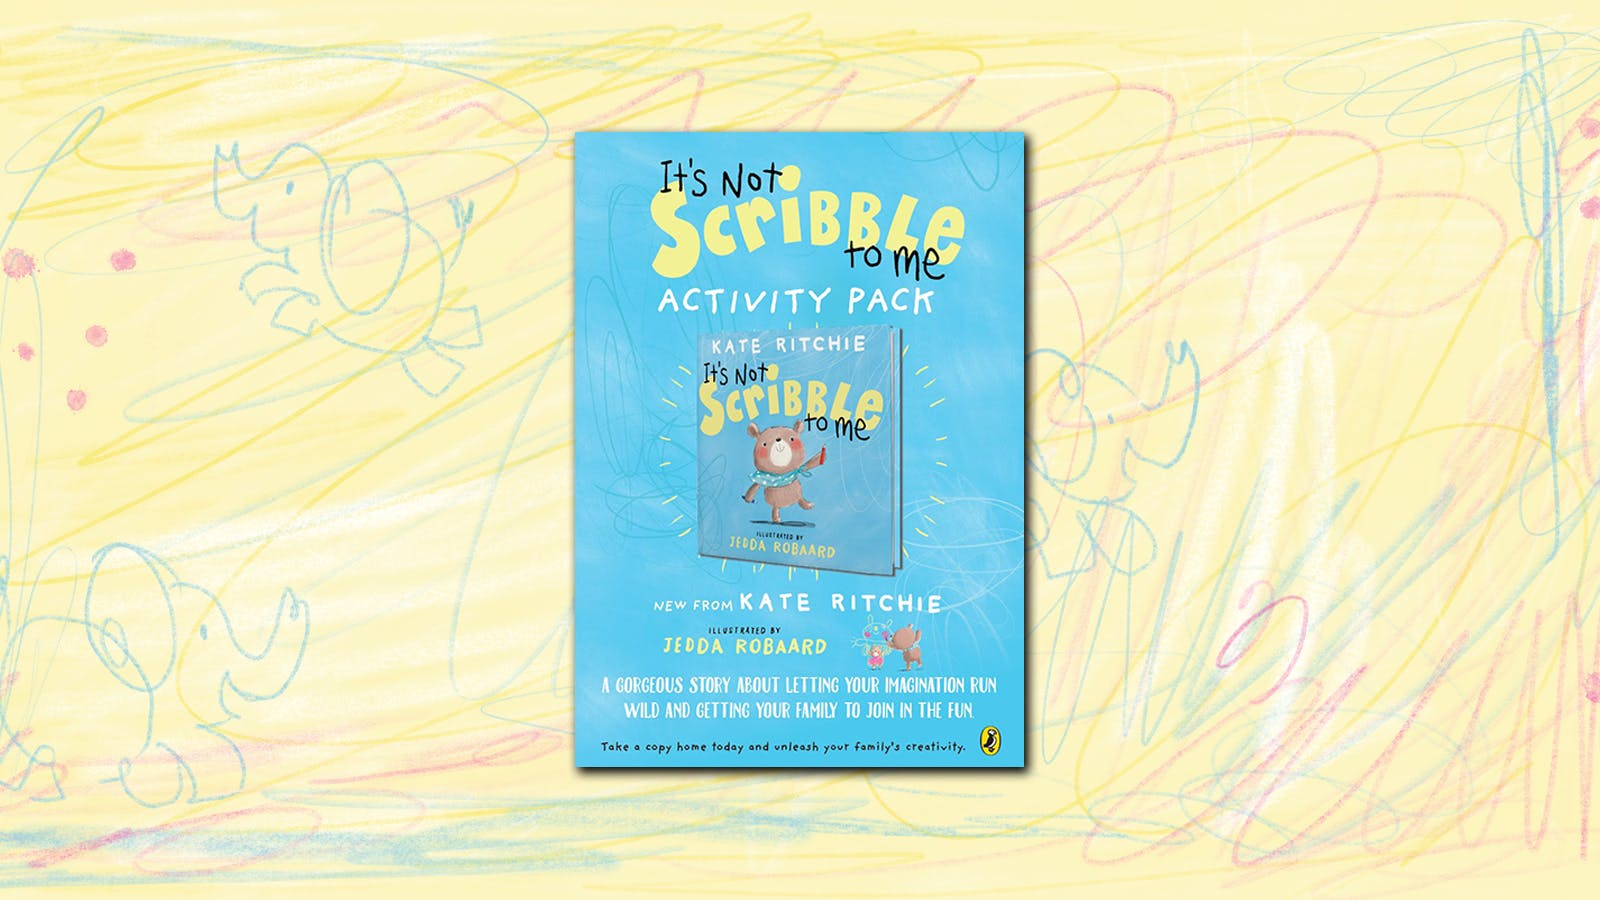 It's Not Scribble To Me activity pack